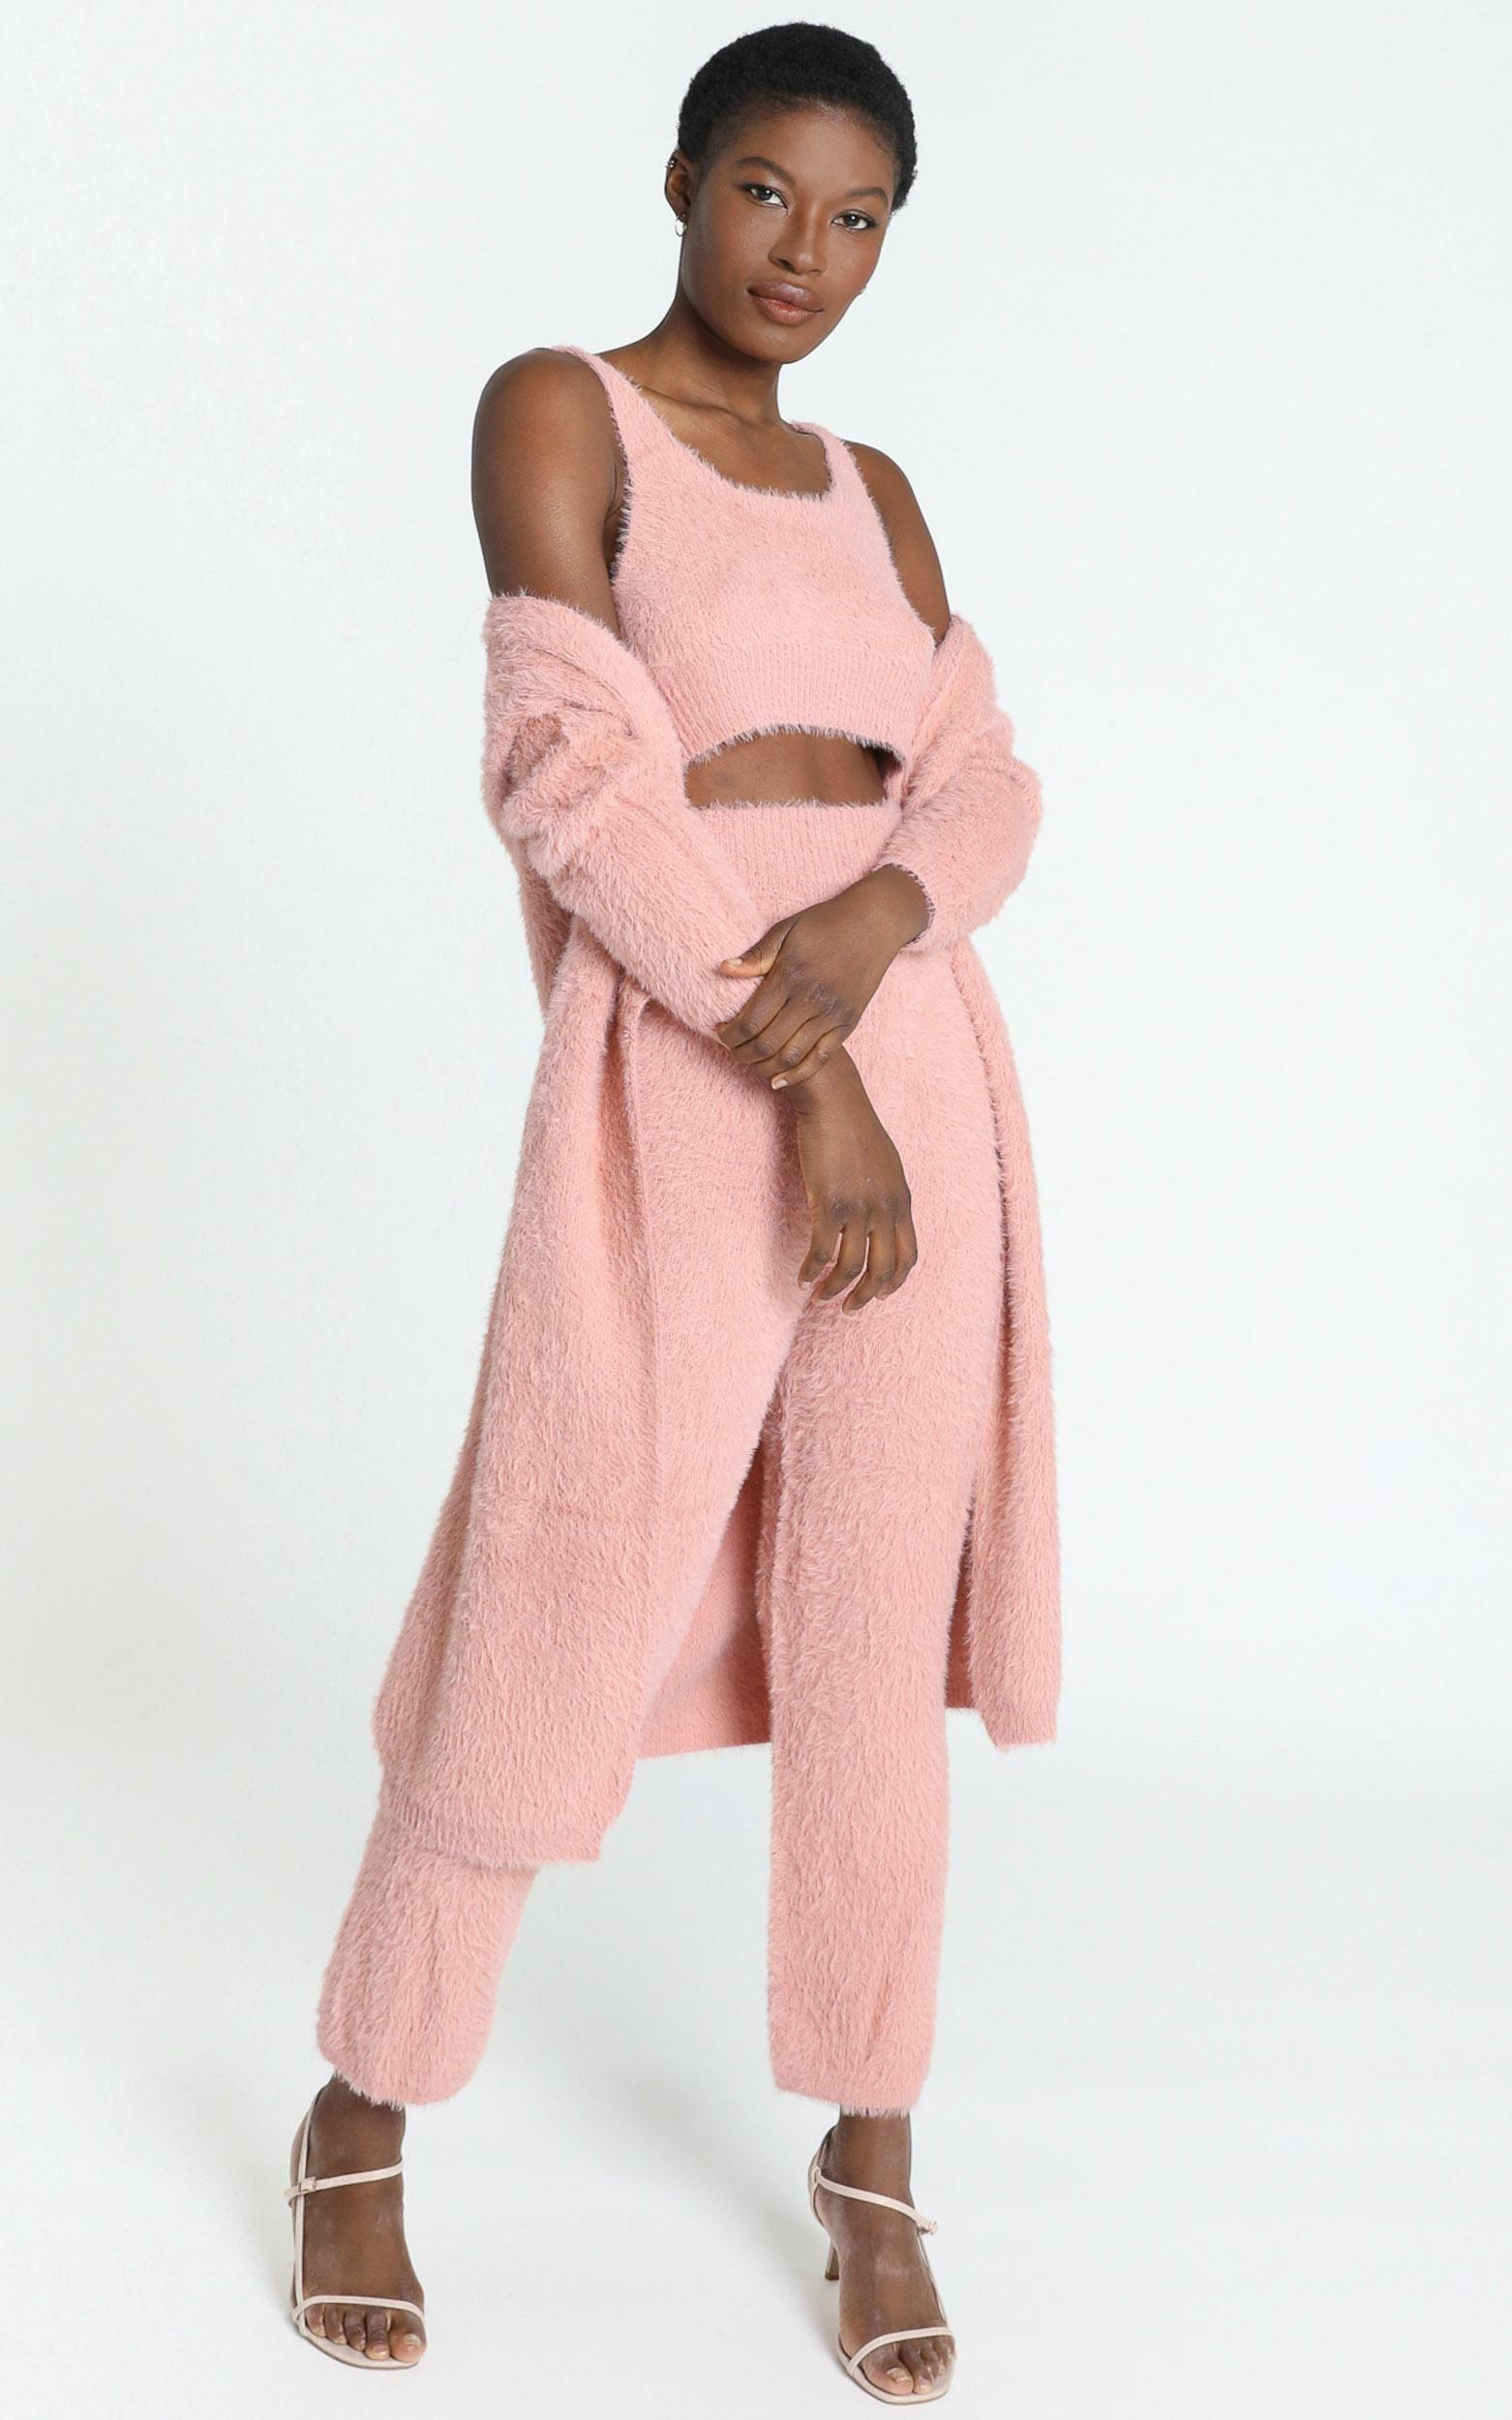 Athena Fluffy Knit Cardigan in Blush - S, Blush, hi-res image number null